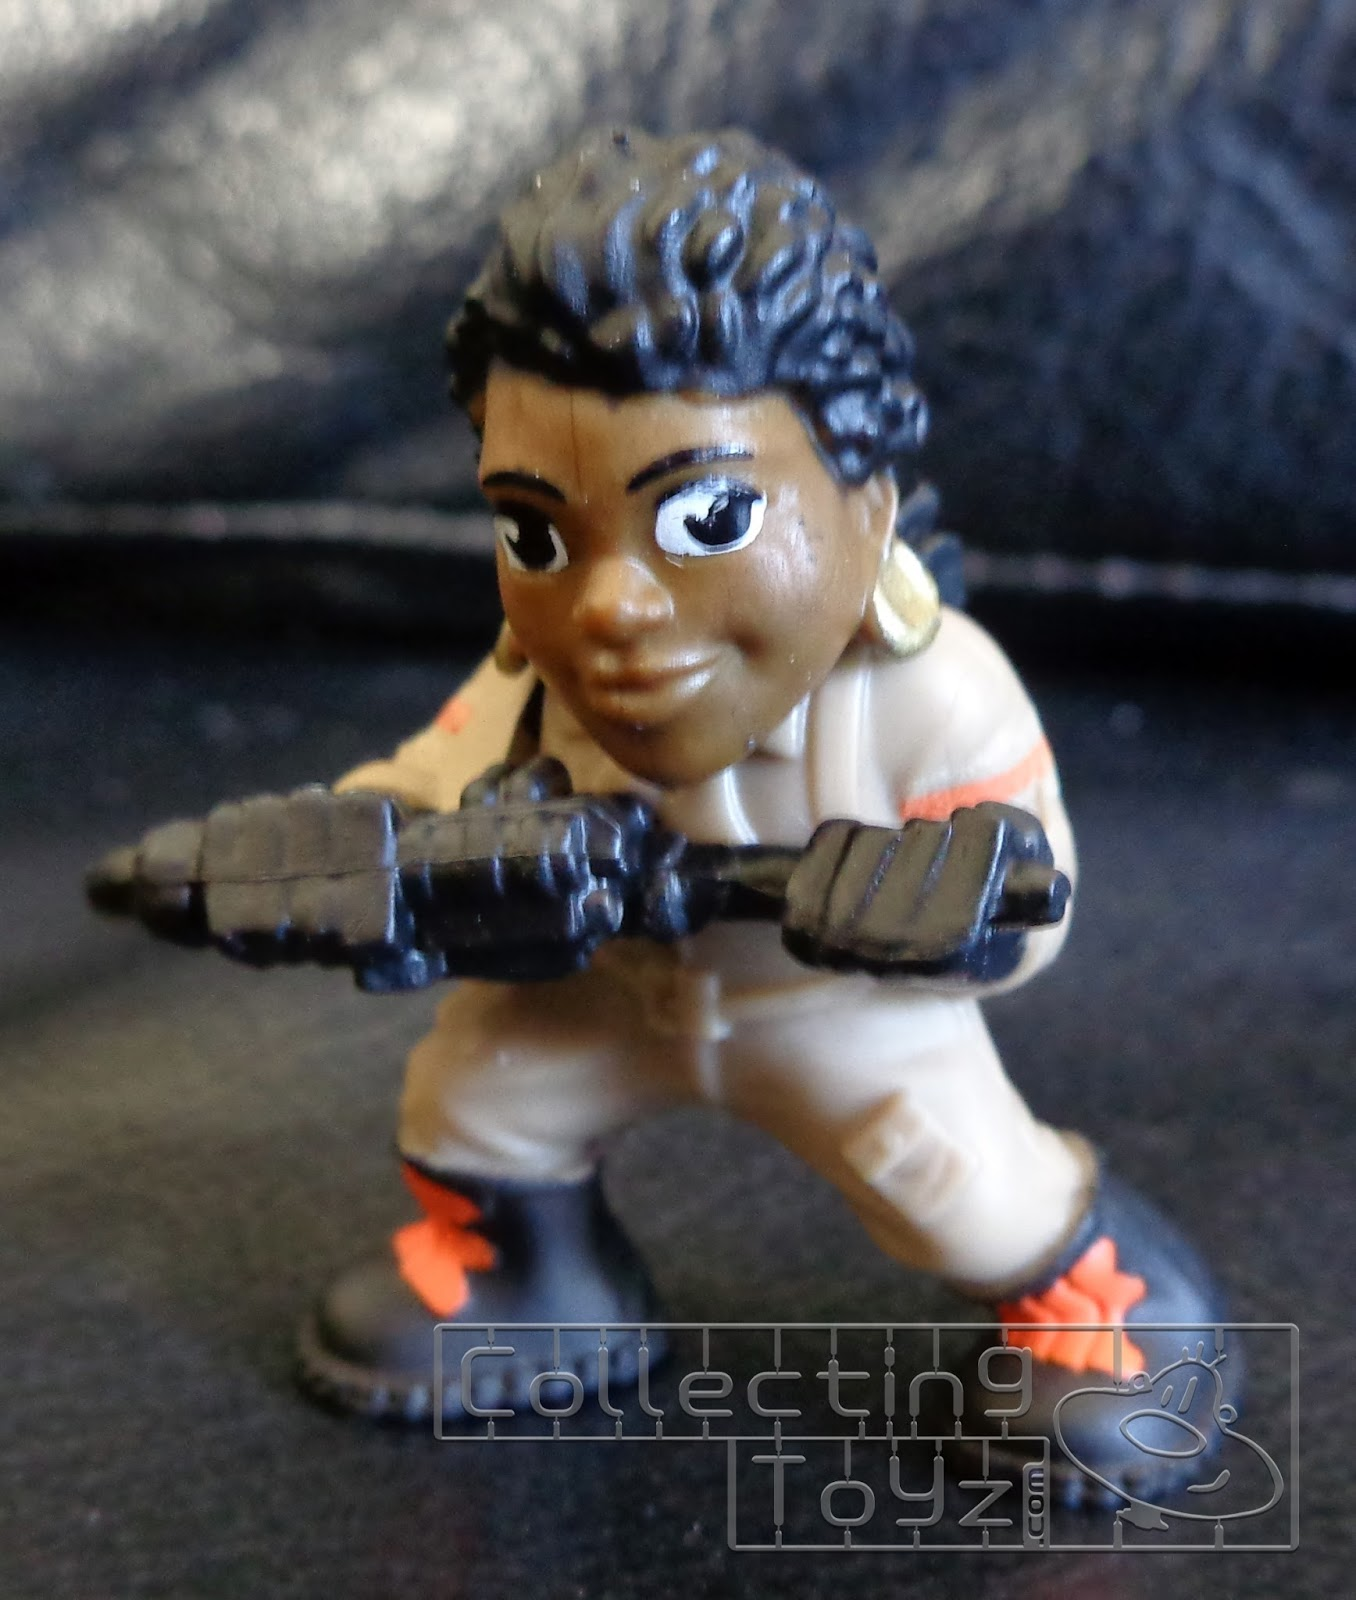 Collecting Toyz: Ghostbusters Classic Ecto Minis & New Ecto